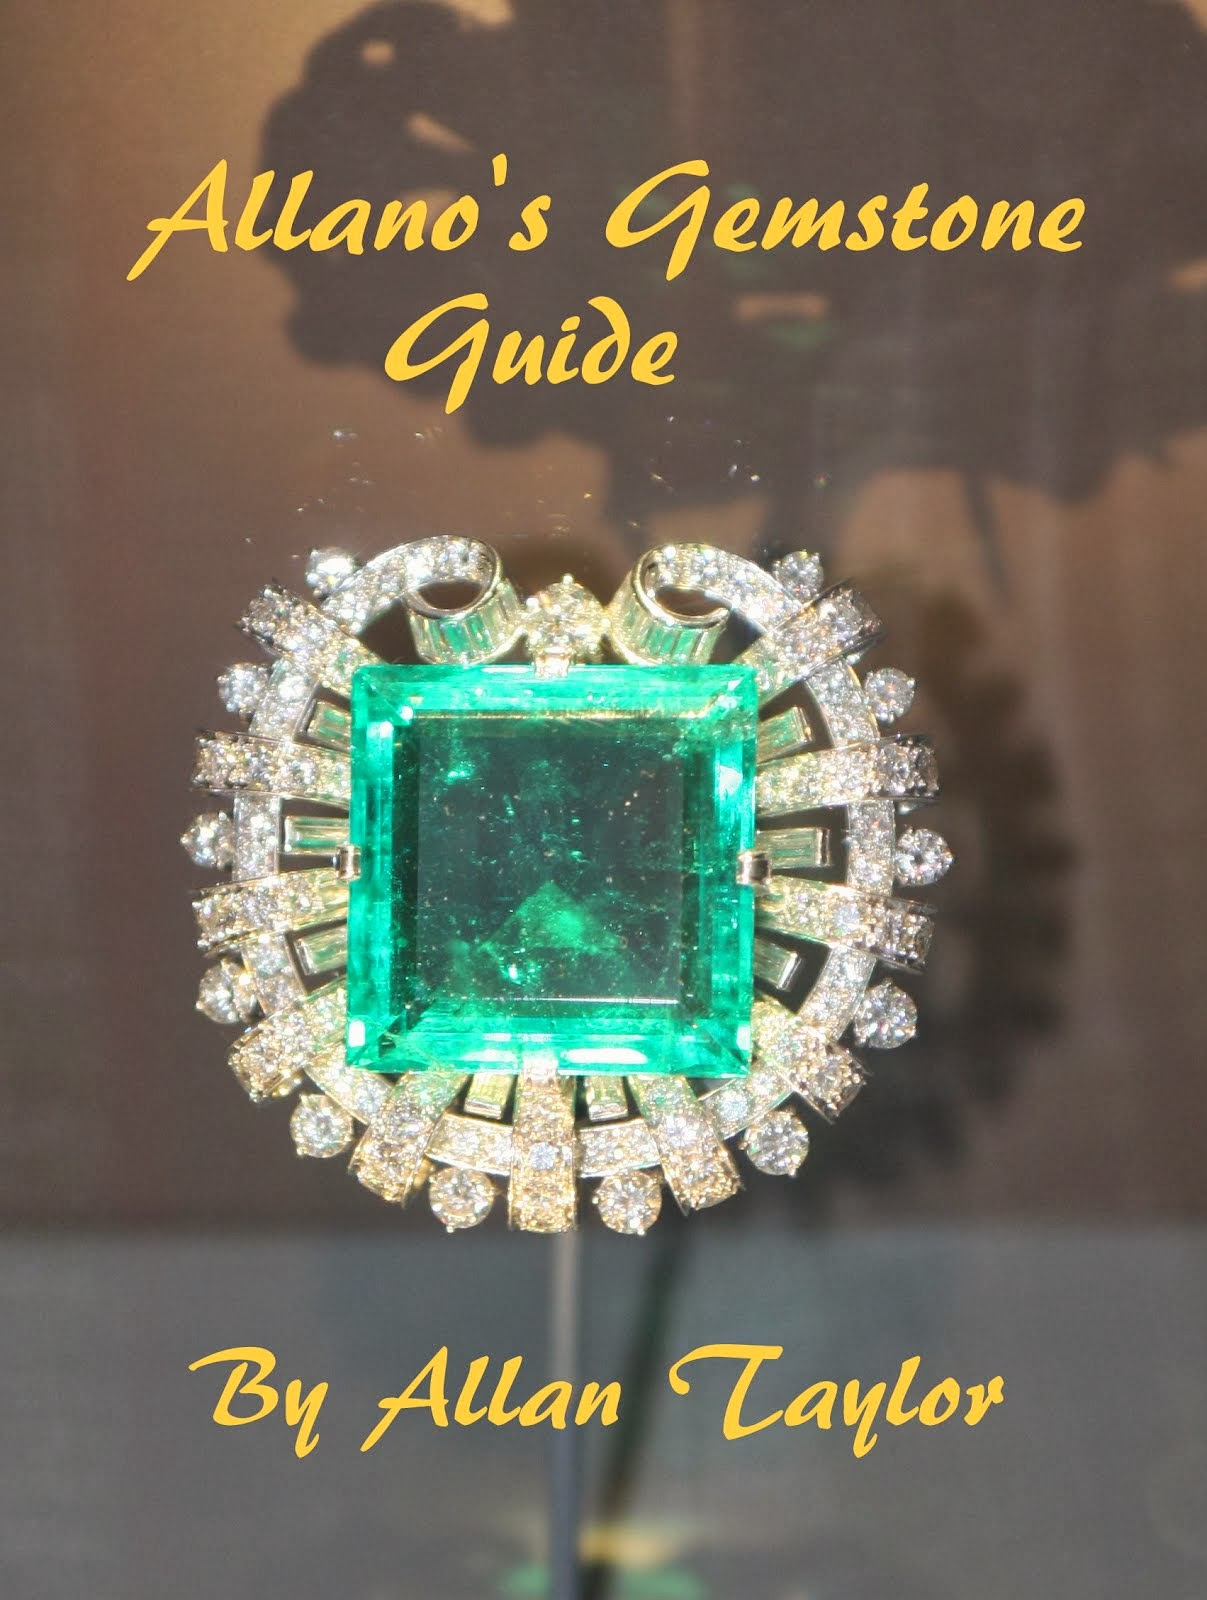 Allano's best gemstone articles